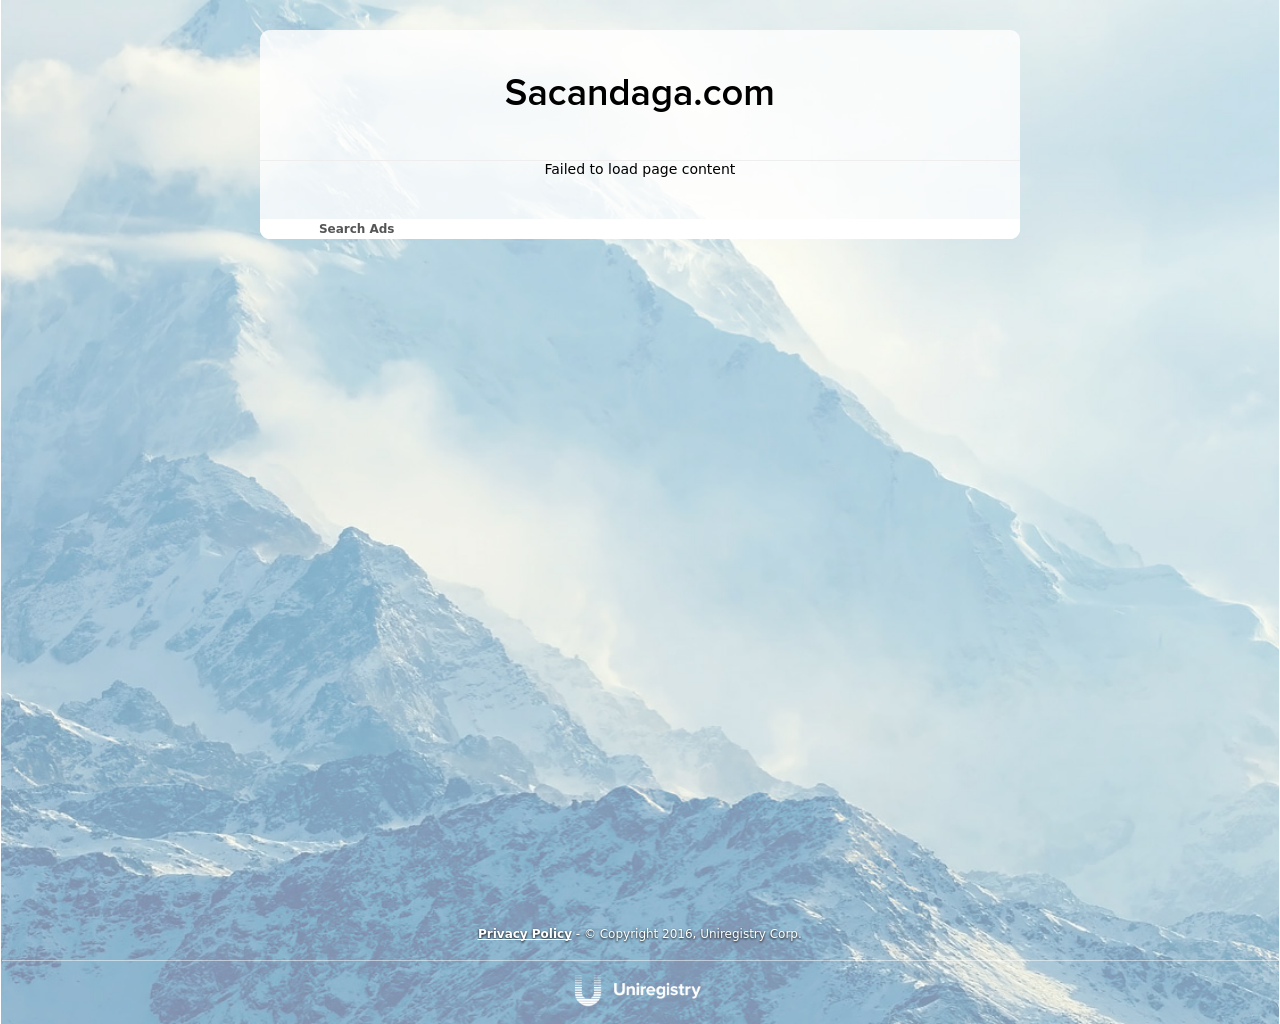 Sacandaga.com-Advertising-Reviews-Pricing